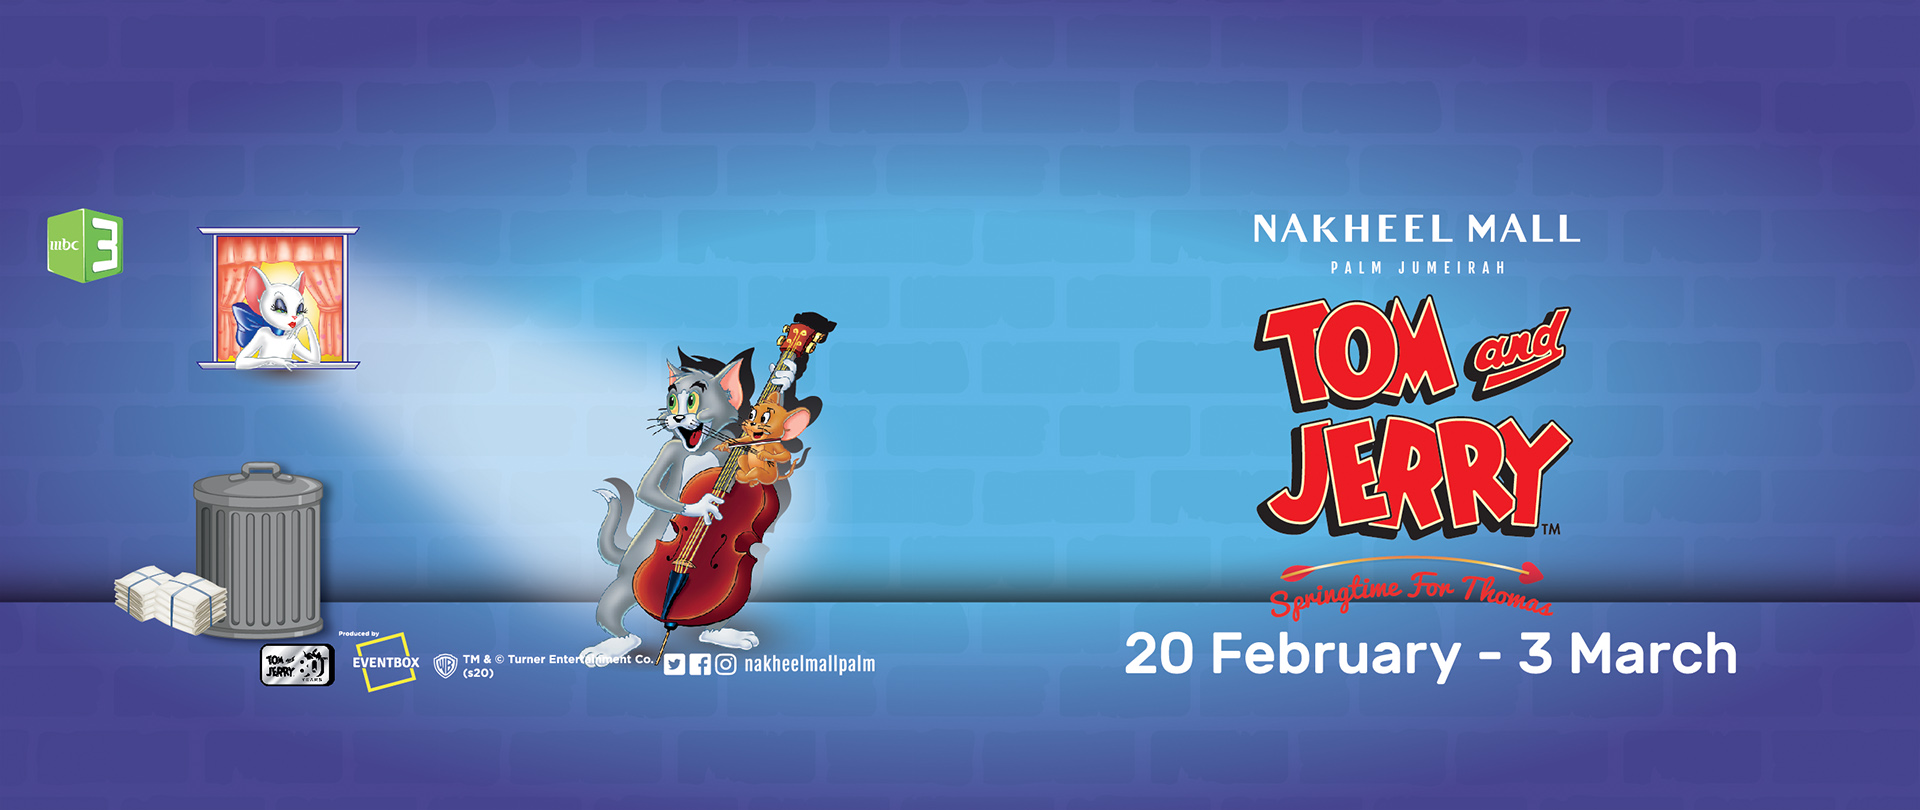 Tom-and-Jerry-Nakheel-Mall